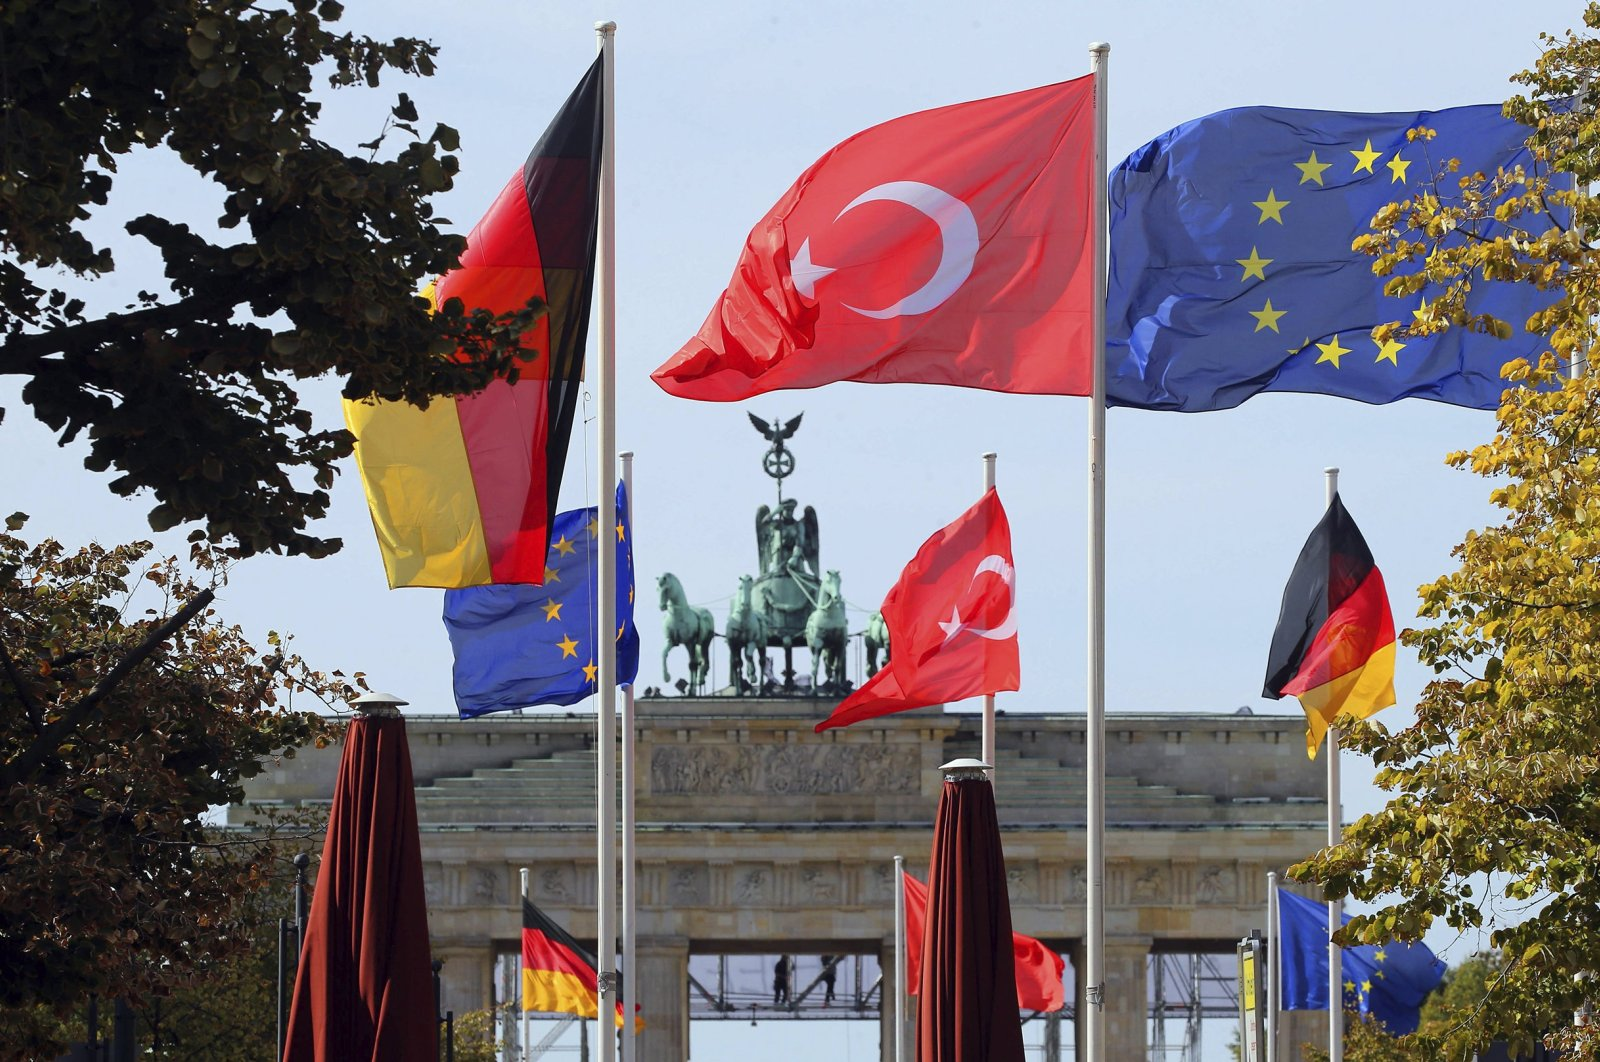 The flags of Turkey, Germany and the European Union flutter in front of the Brandenburg Gate in Berlin, Sept. 26, 2018. (AFP Photo)